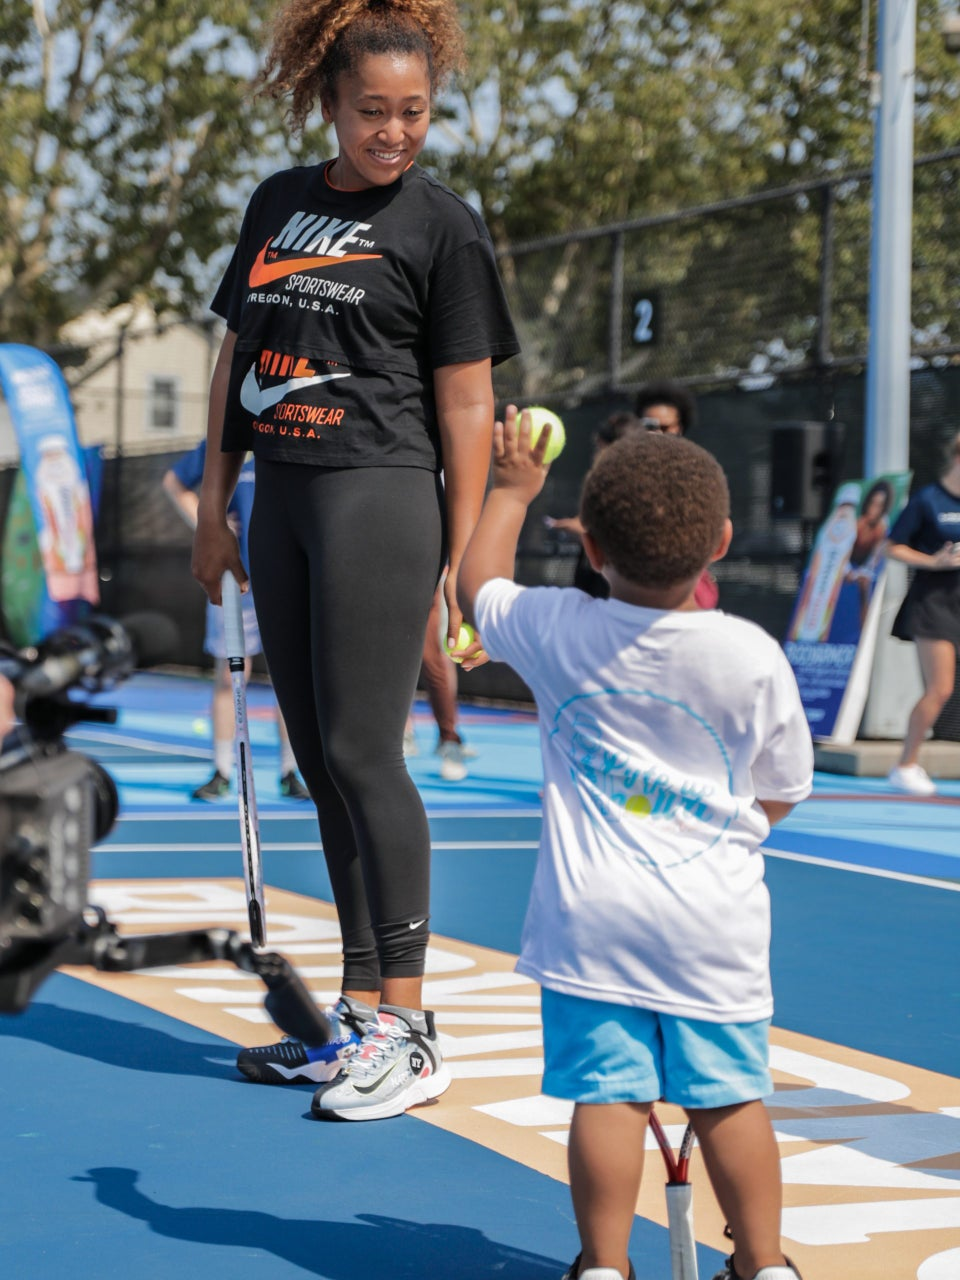 Naomi Osaka Returns To Restored Courts Where She Got Her Start To Play With Next Generation Of Tennis Stars